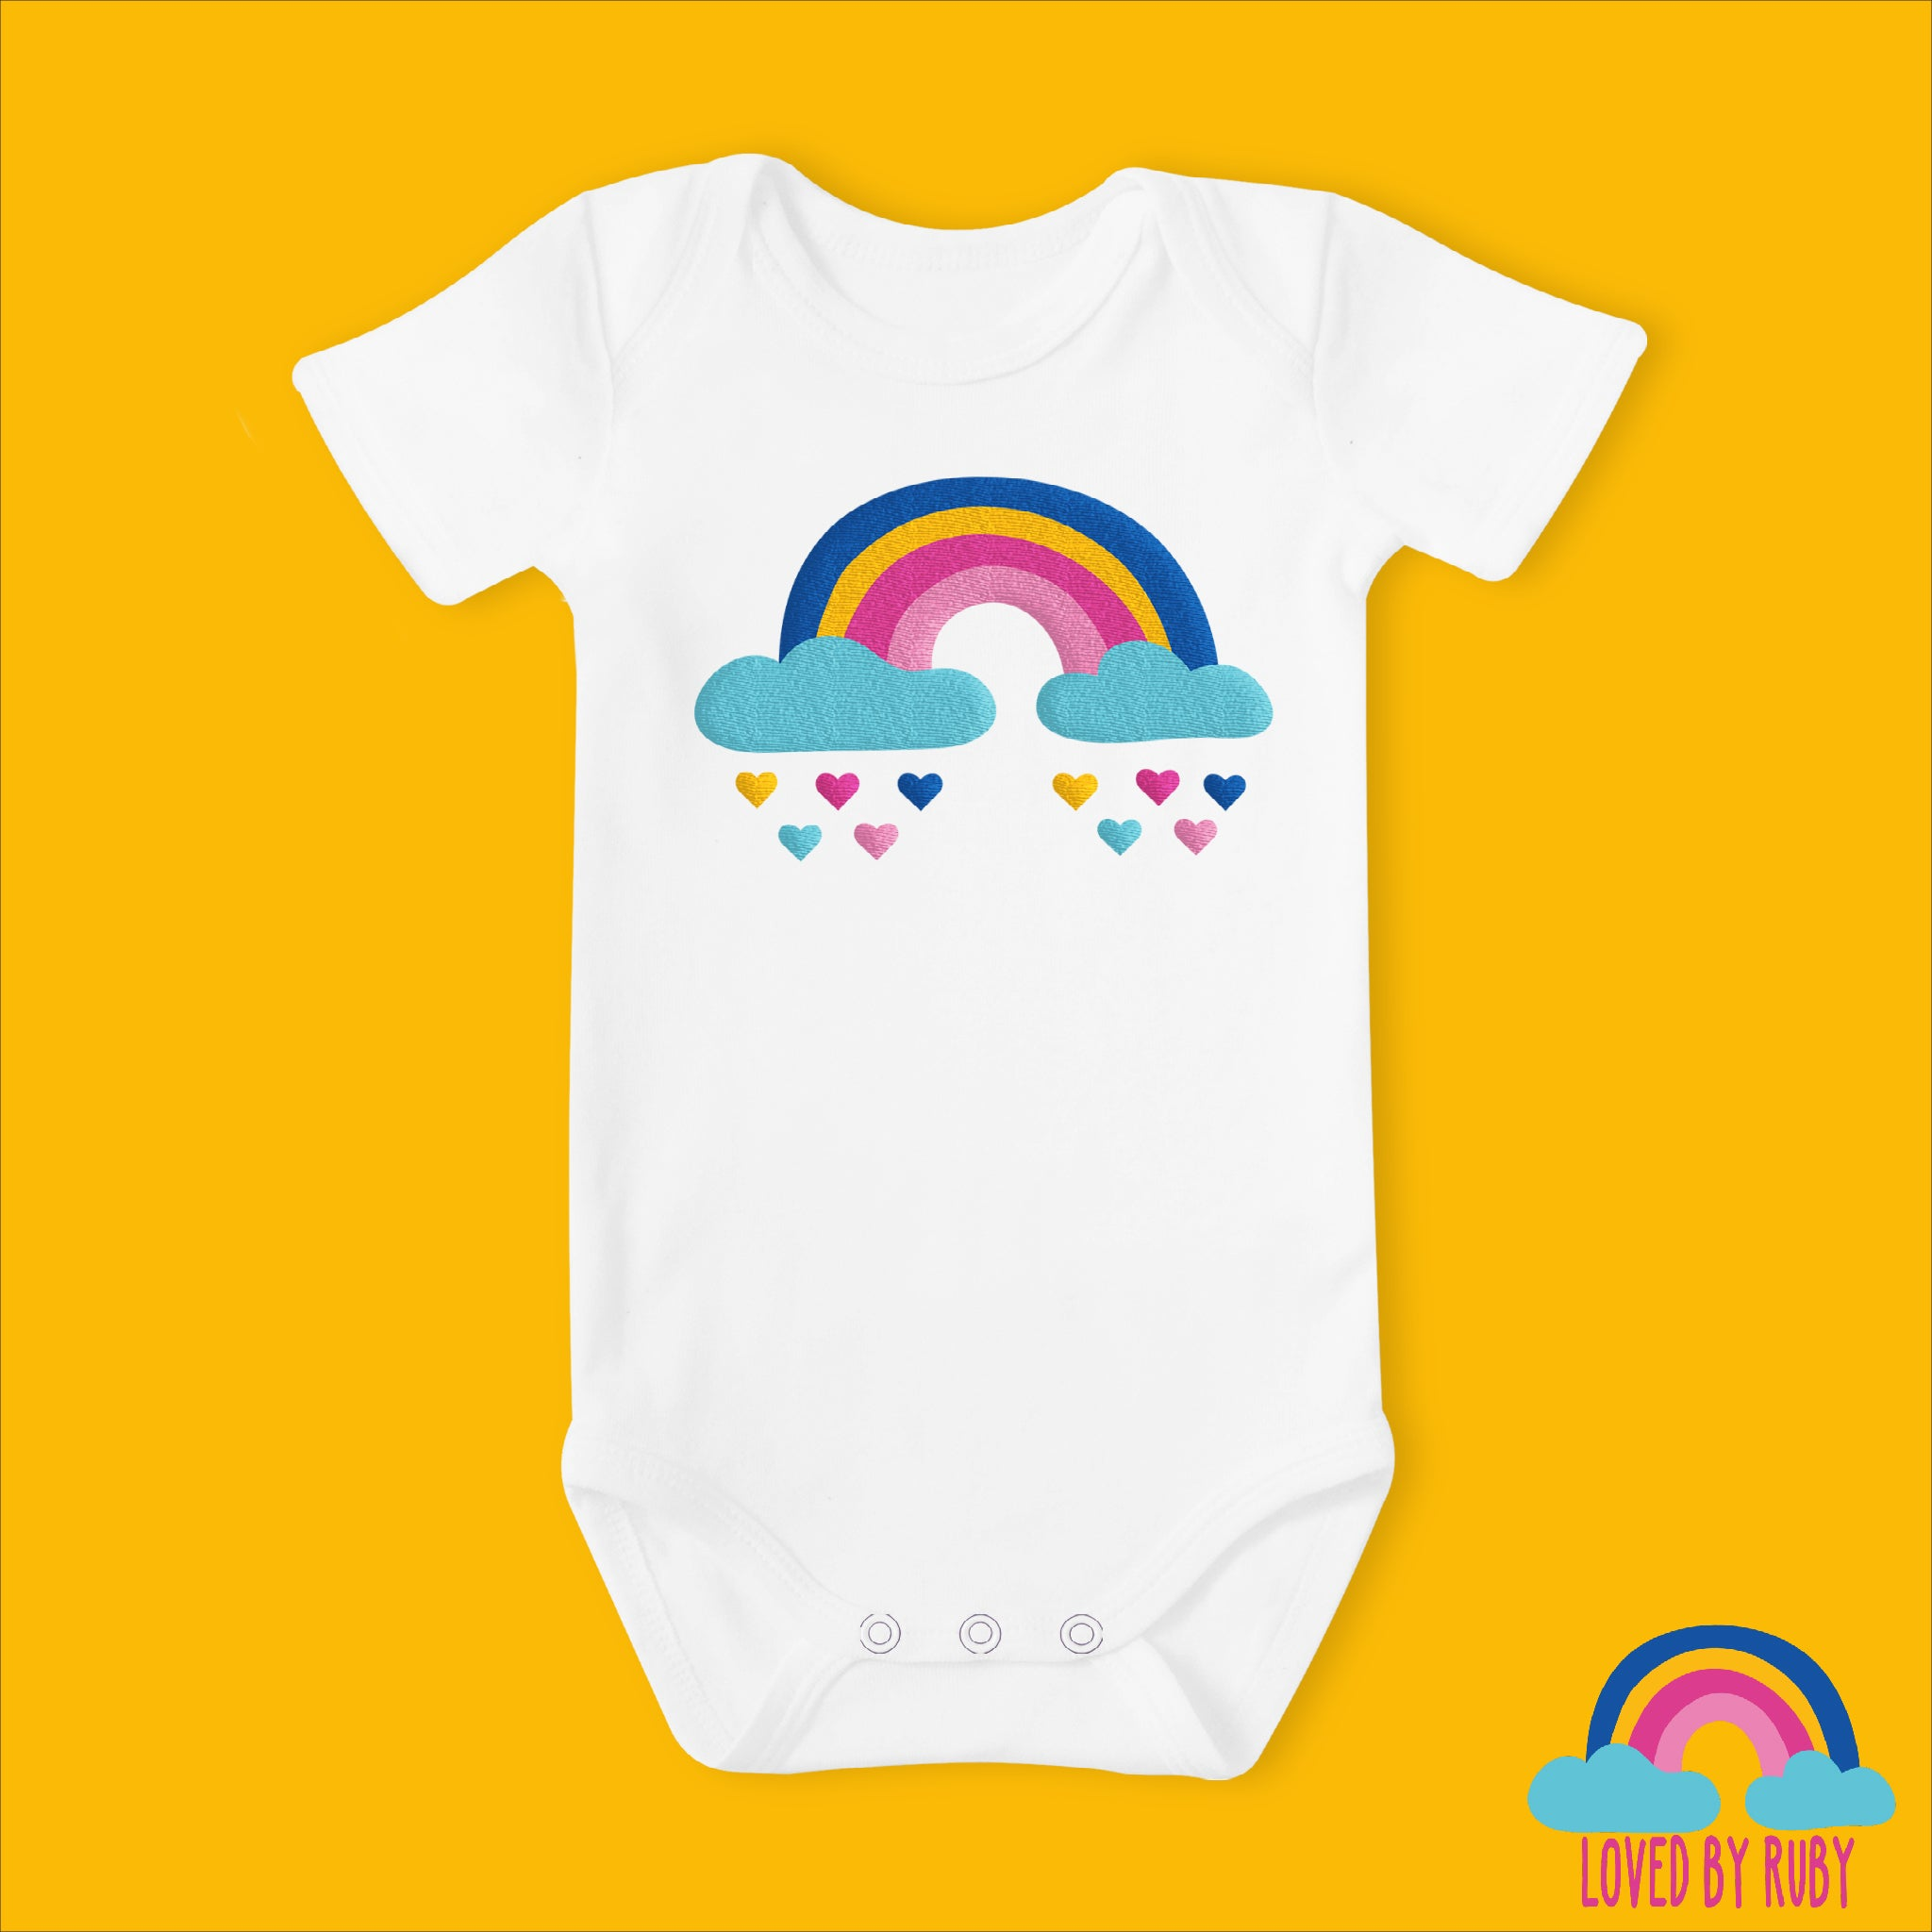 Rainbow Baby Vest in White with Rainbow Hearts Design - Ruby and the Rainbow